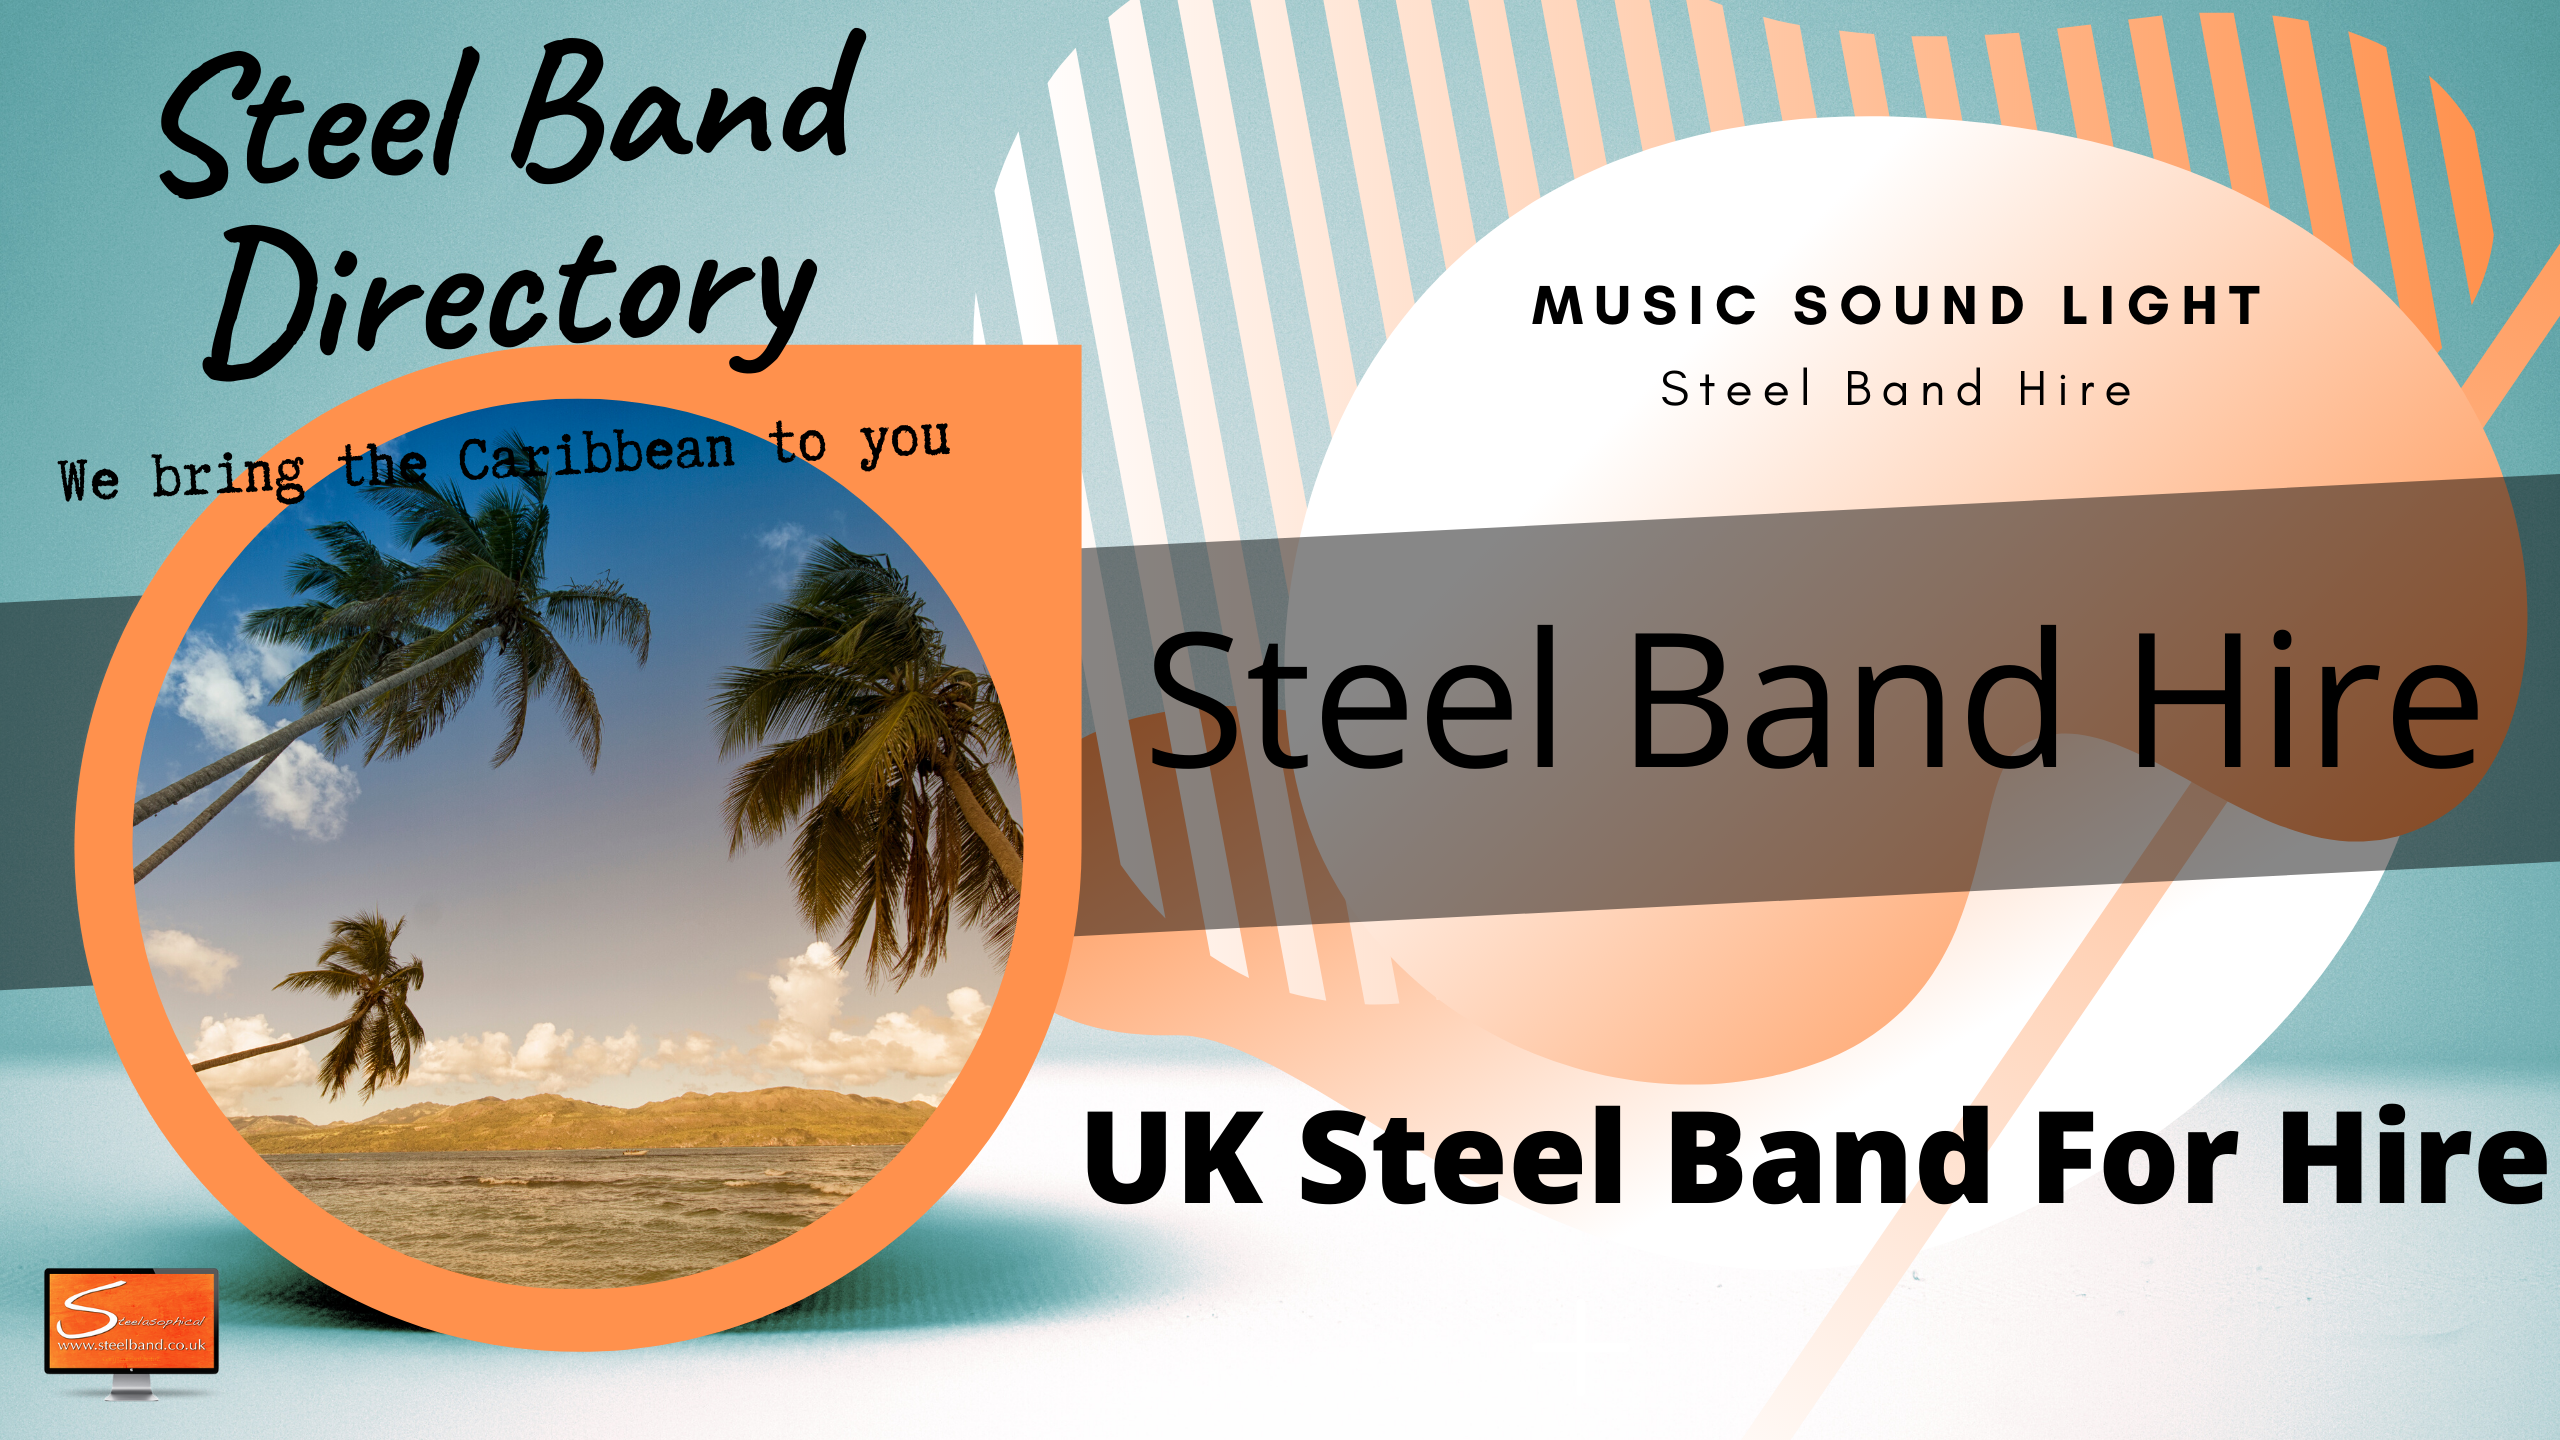 Find Steelband near me uk